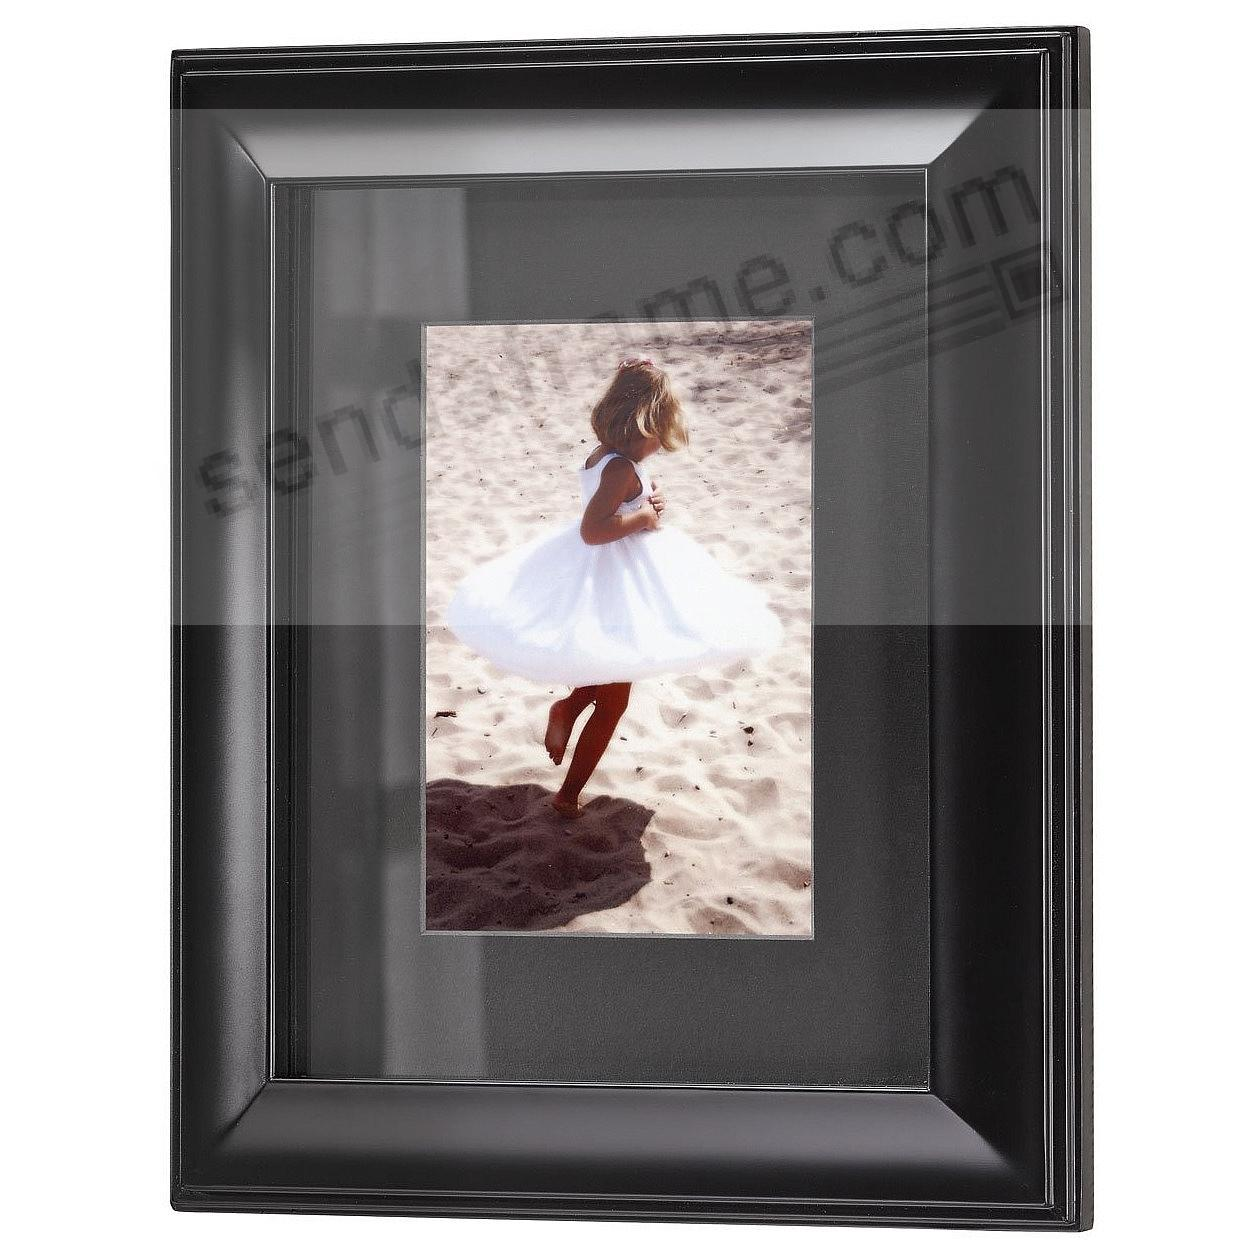 hudson black matted ebony black wood frame 8x10 5x7 from artcare by